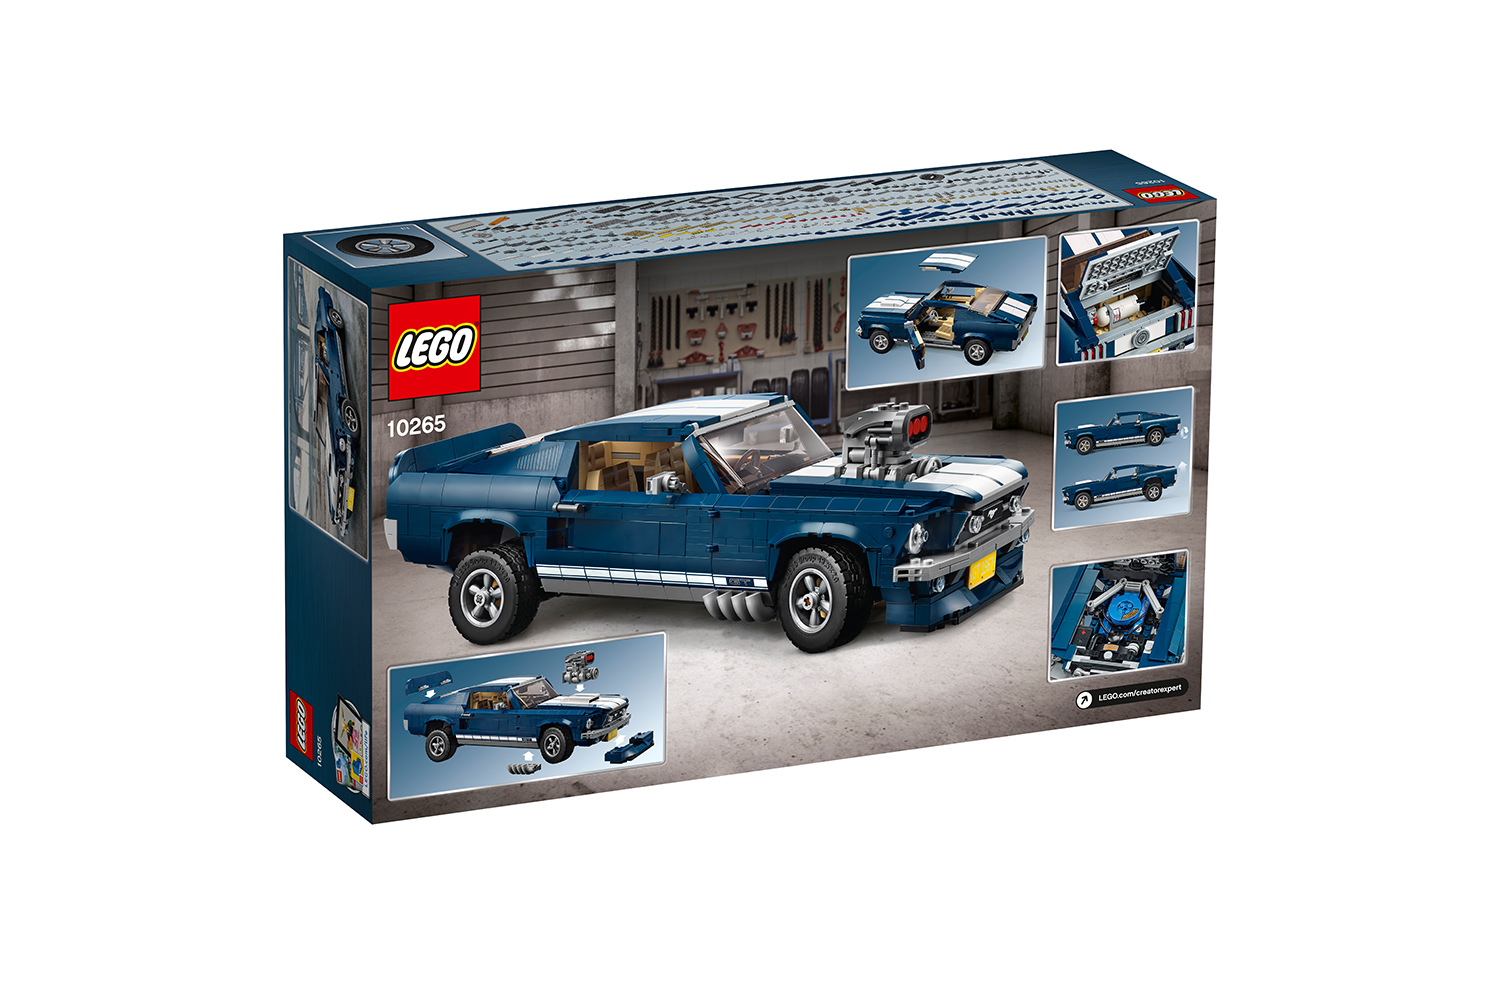 lego-creator-expert-ford-mustang-blauw-wit-10265/